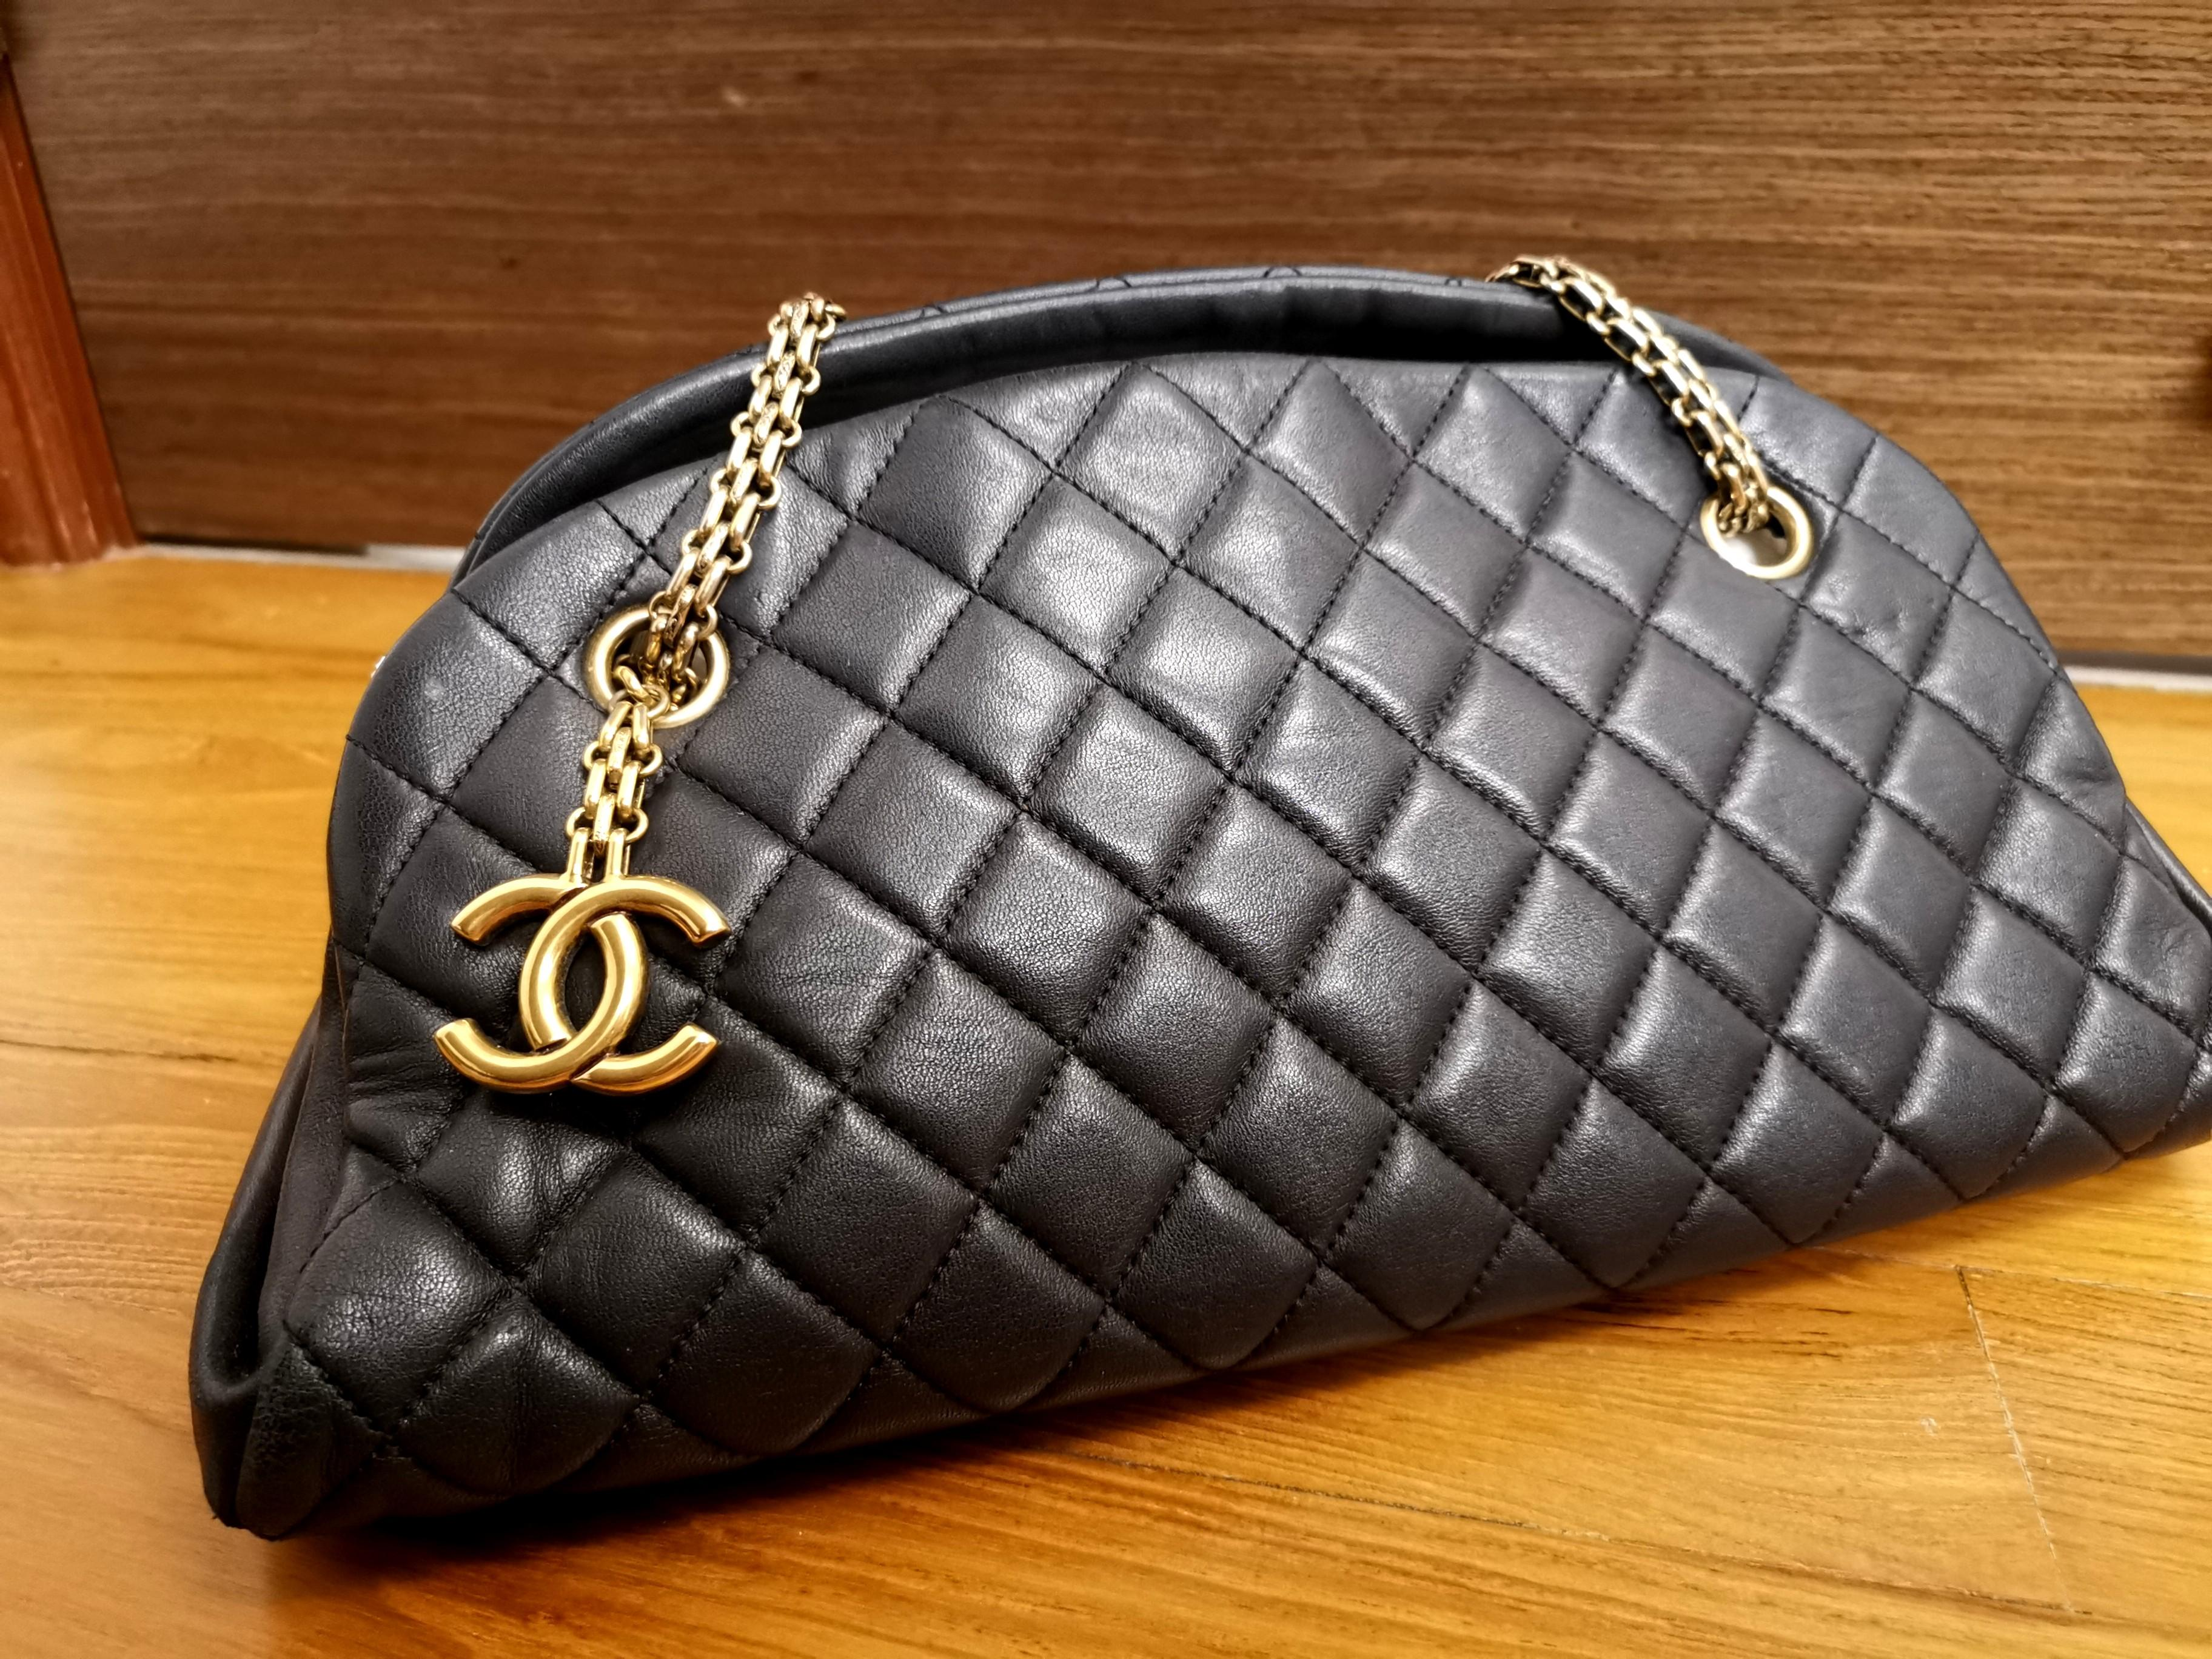 Authentic Chanel Mademoiselle Calfskin Bag